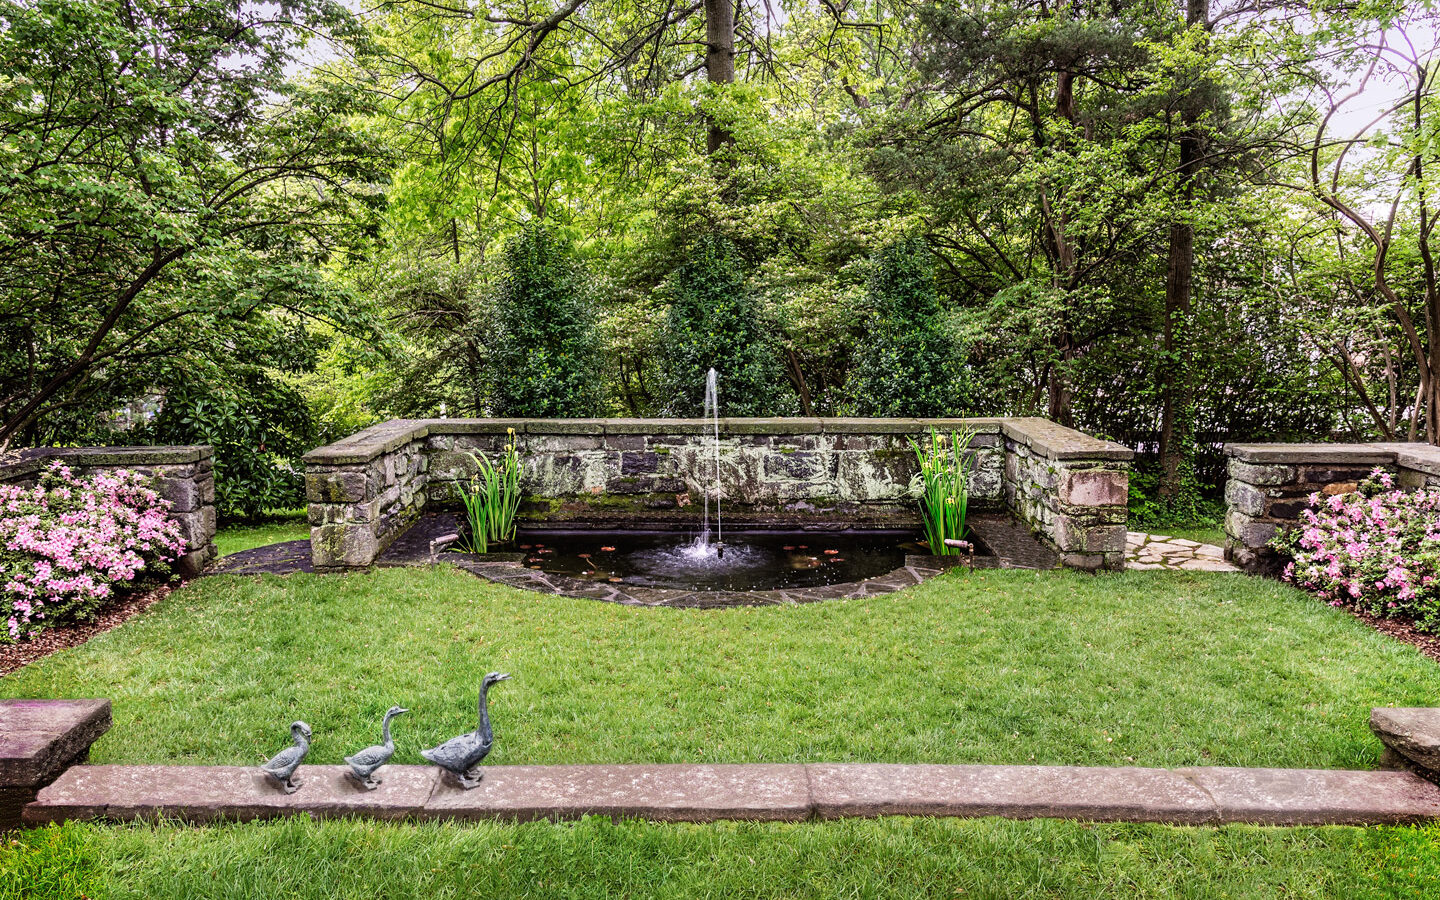 Fountain with duck accents